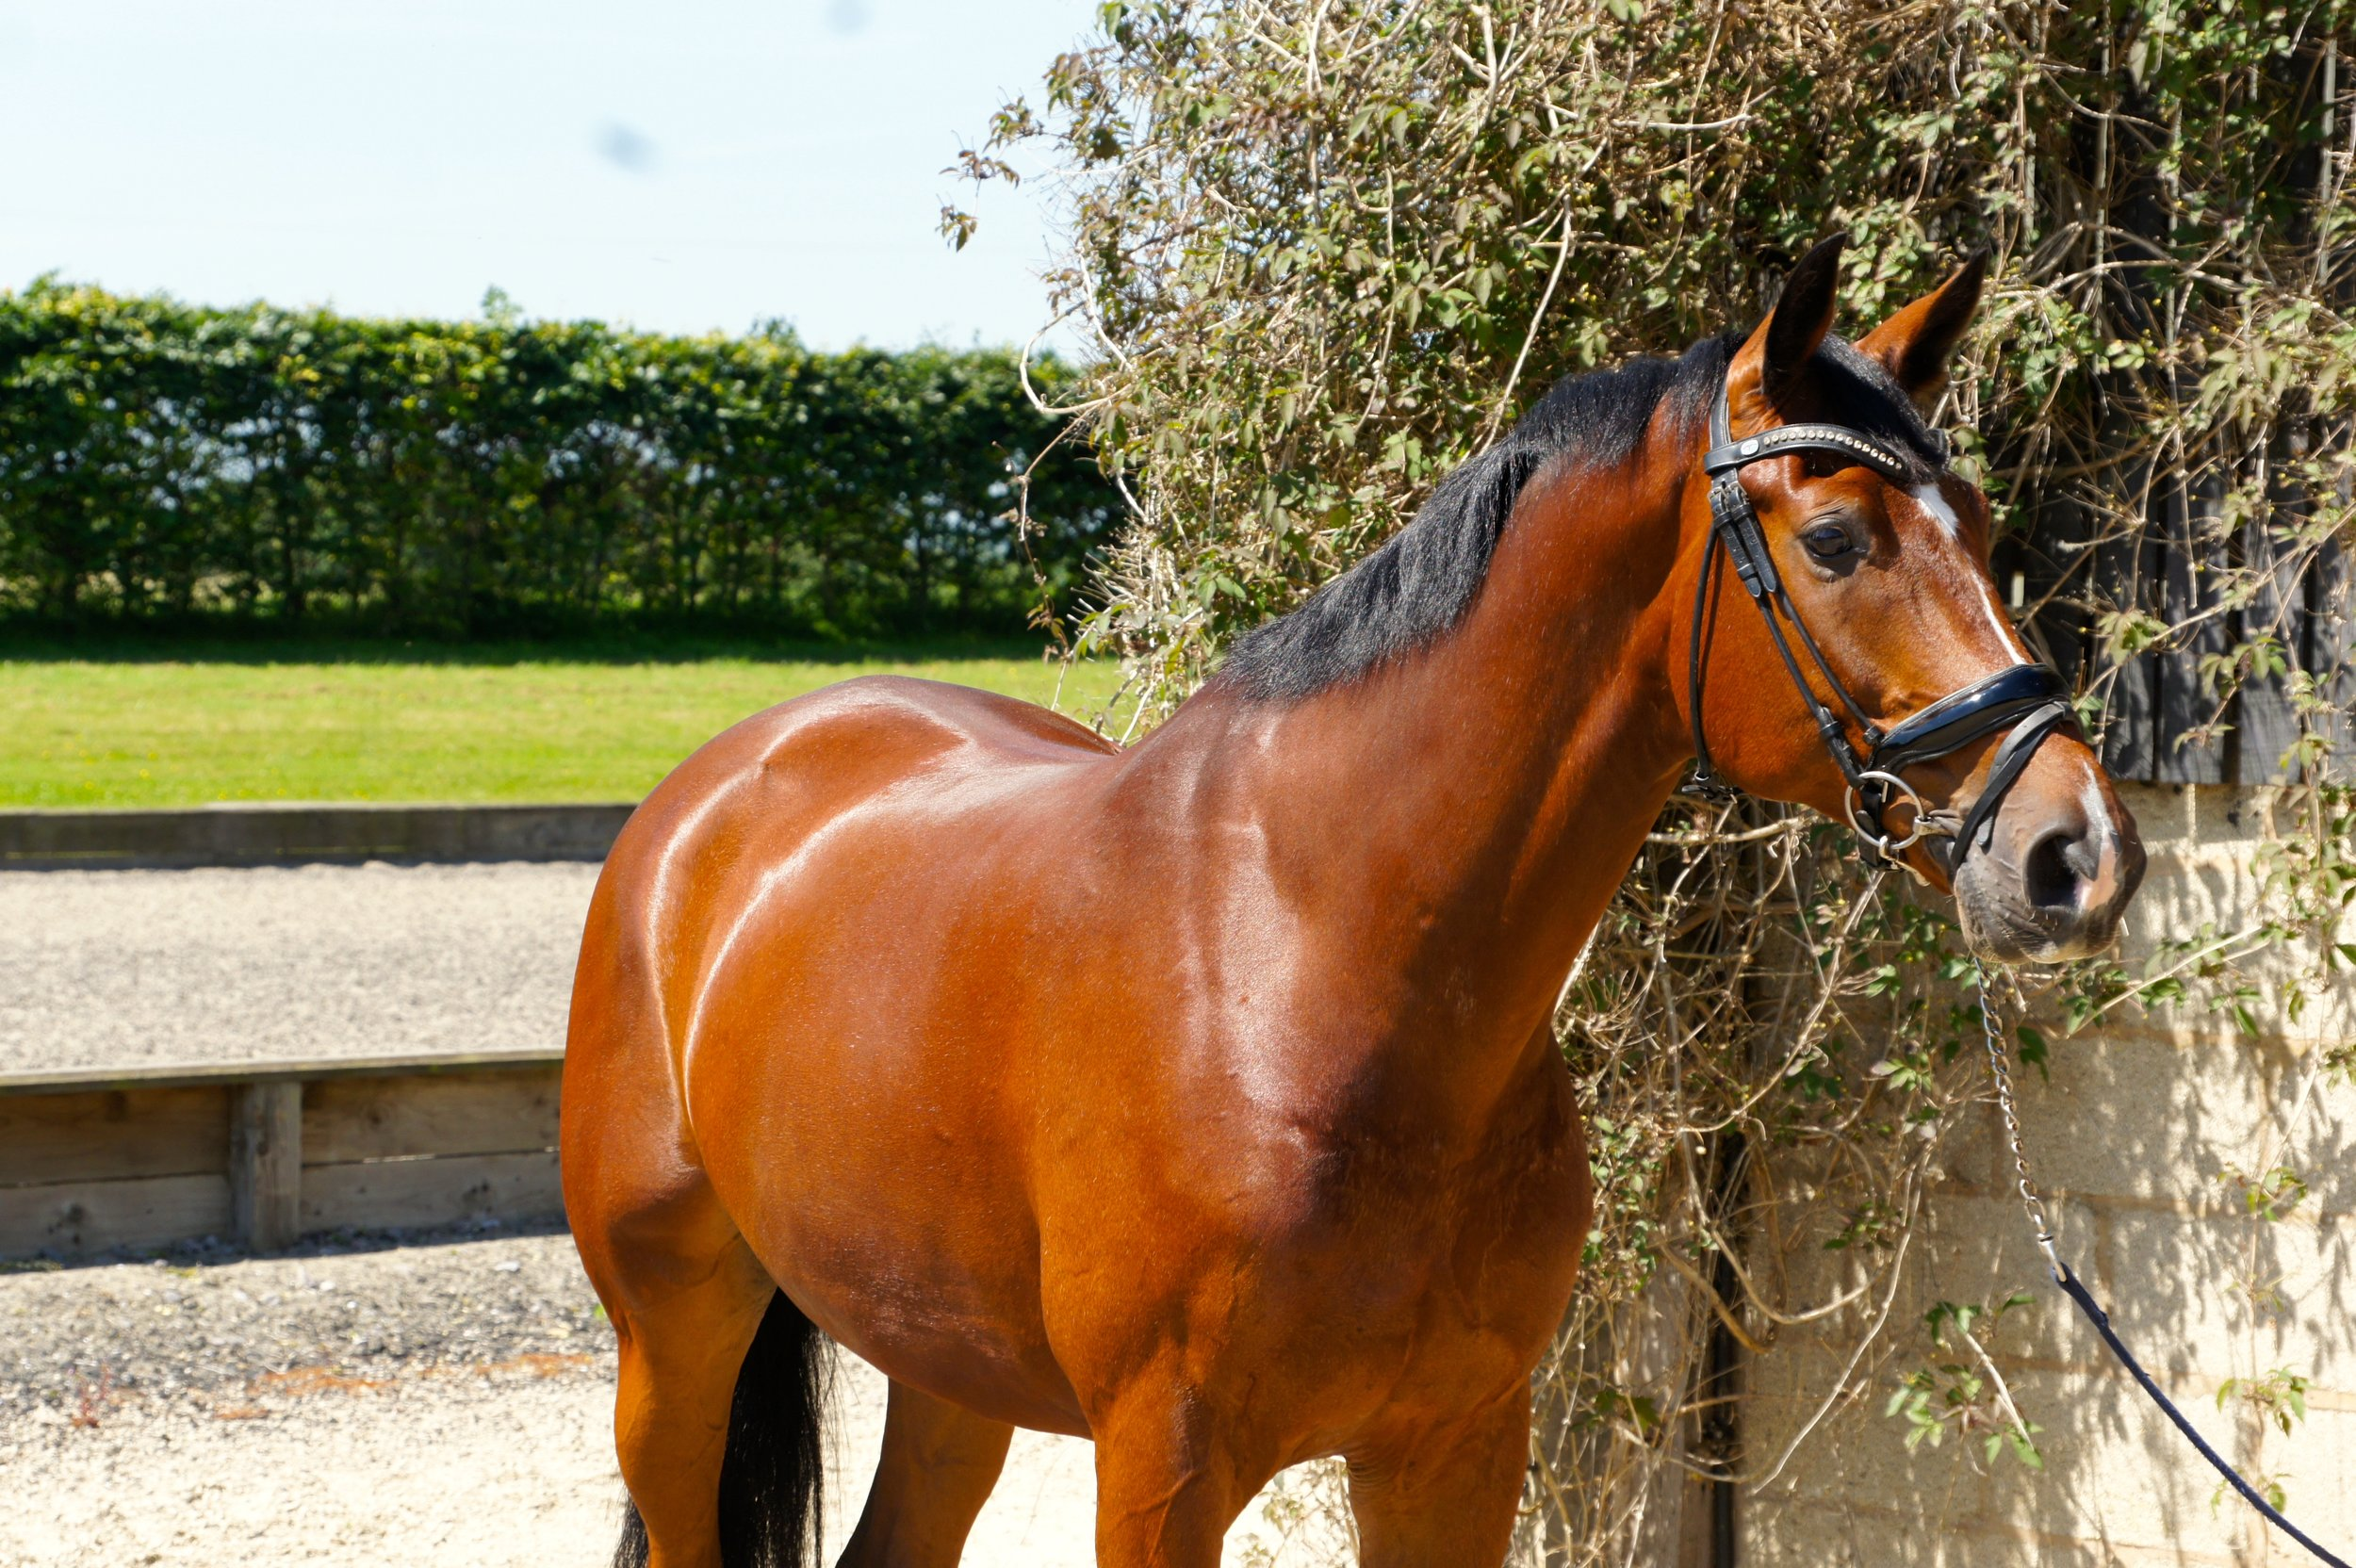 Grandio  Stable Name :George  Colour : Bay  Height : 16.2  Sex : Gelding  Breeding : Lord Leatherdale x Negro  Country of Origin :Holland  Year Foaled : 2011  Owner : Sam Forrest  Level :Elementary